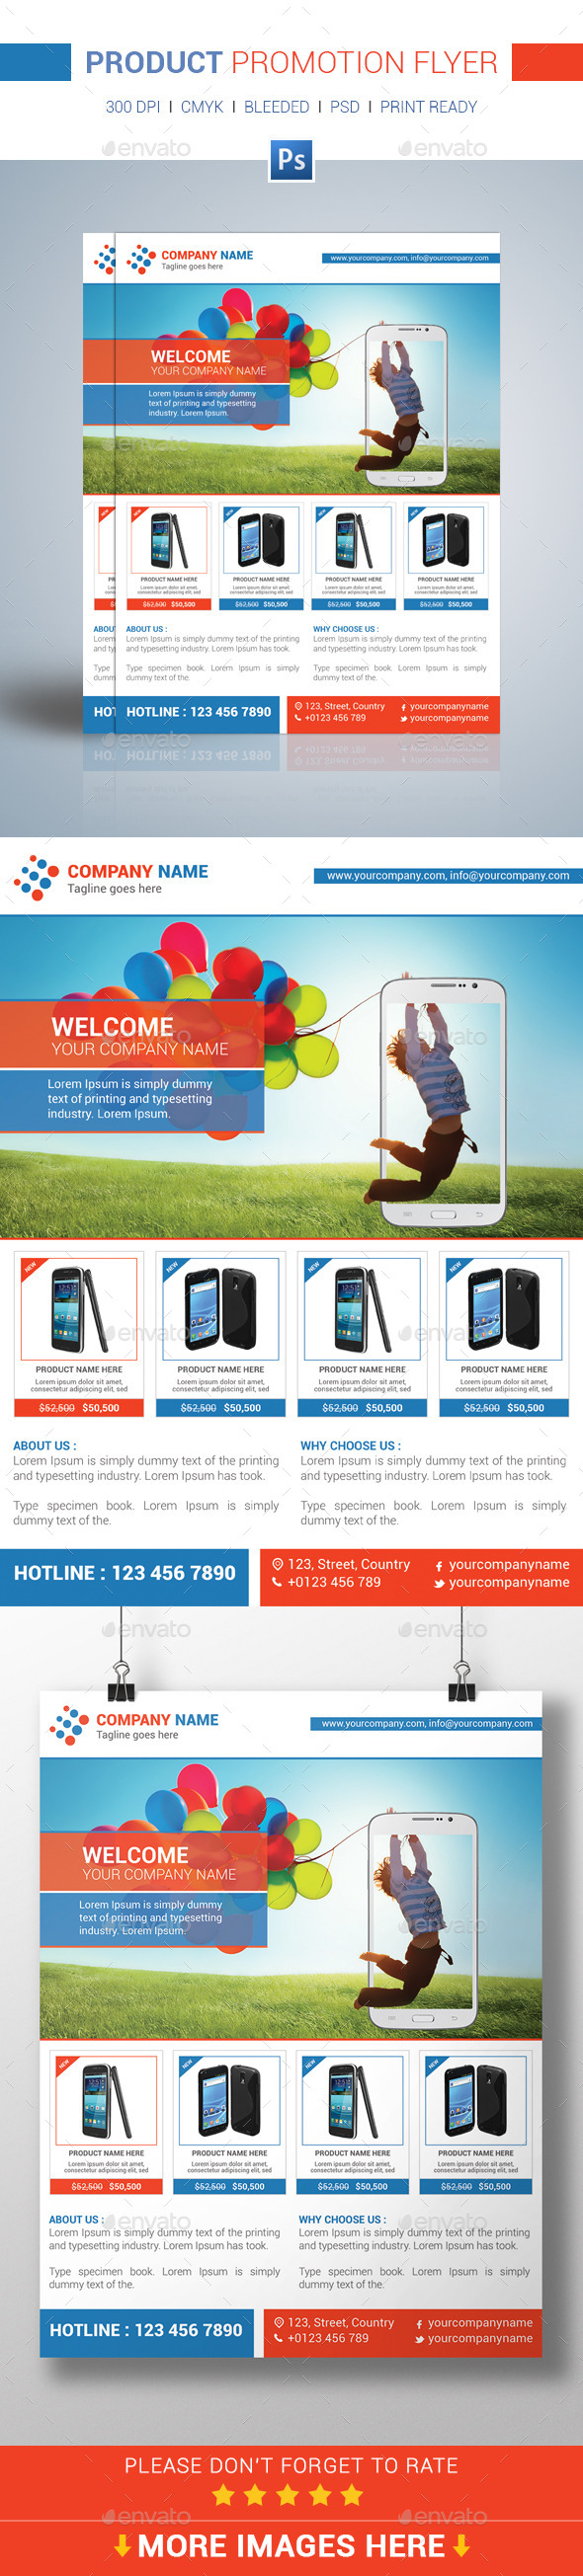 GraphicRiver Product Promotion Flyer Template 11261922